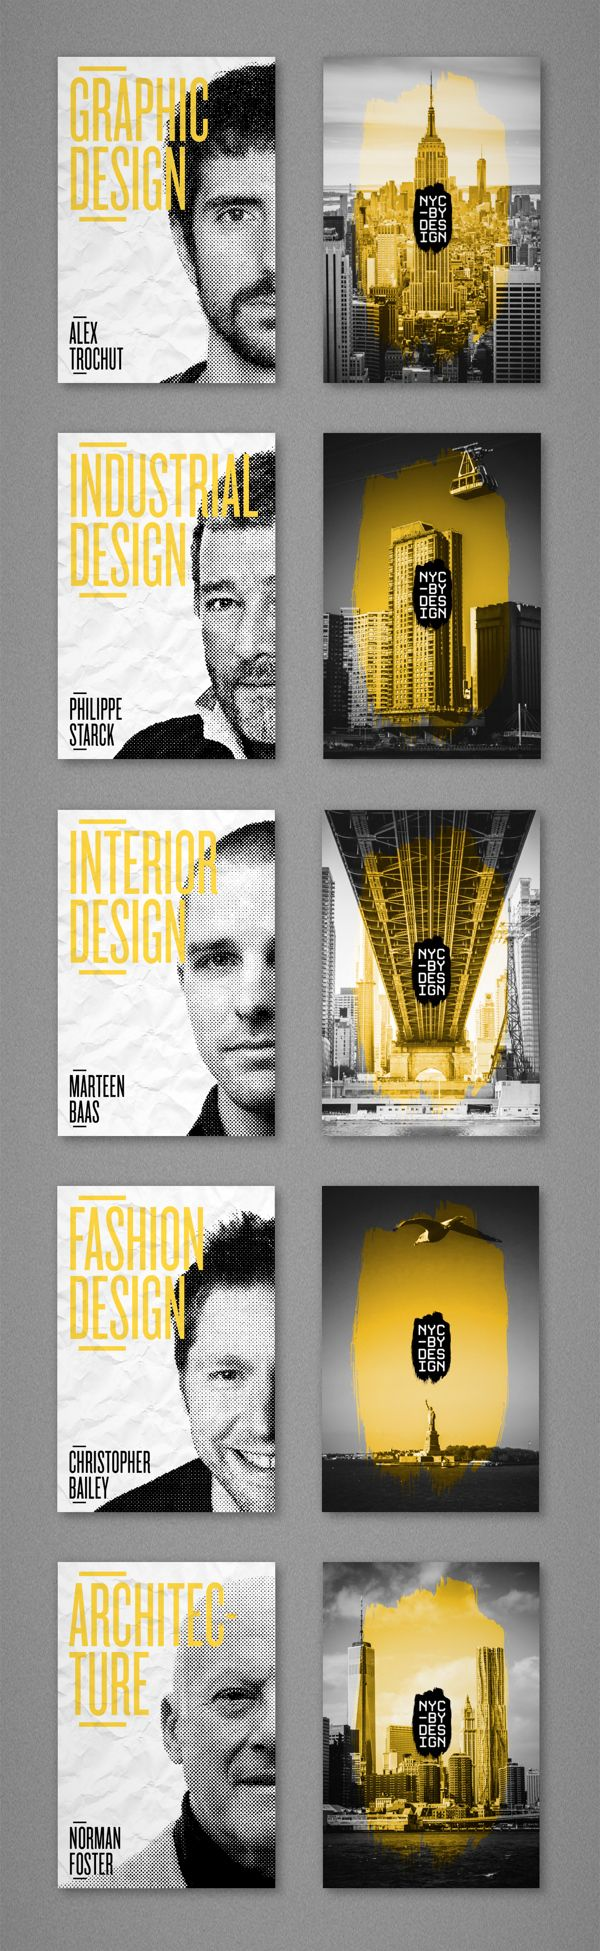 pinterest.com/fra411 #graphic - New York Design Week.